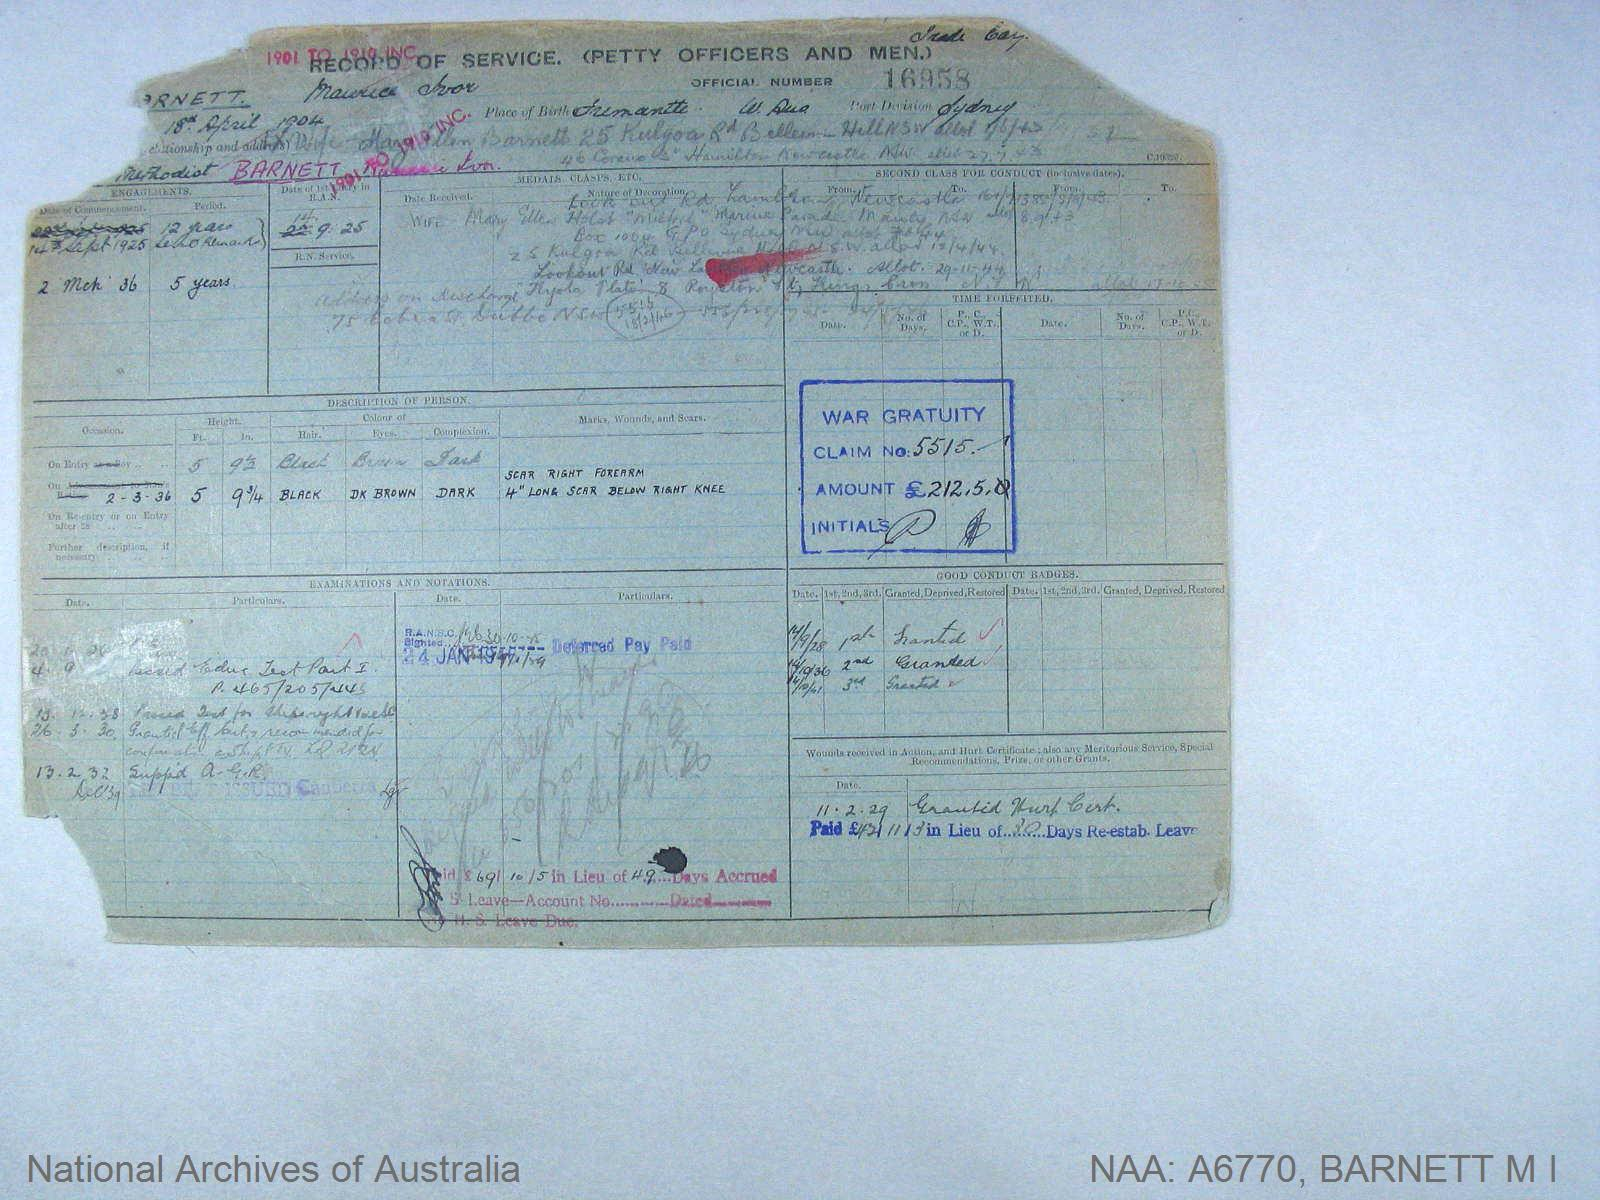 BARNETT MAURICE IVOR : Service Number - 16958 : Date of birth - 18 Apr 1904 : Place of birth - FREMANTLE W AUS : Place of enlistment - SYDNEY : Next of Kin - BARNETT MARY